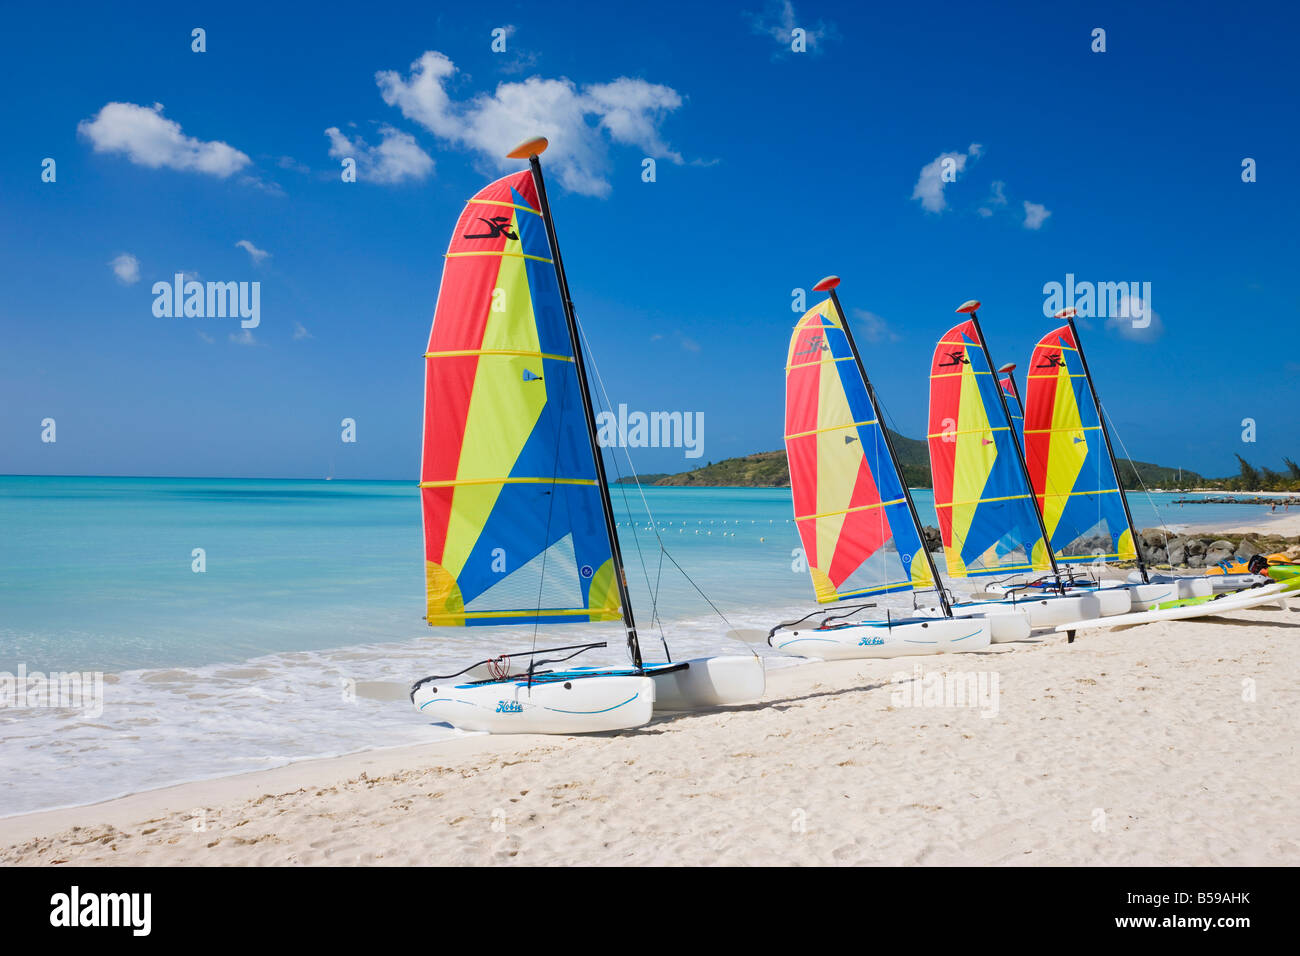 Jolly Beach Resort Antigua Map%0A Colourful sailboats on Jolly Beach  Antigua  Leeward Islands  West Indies   Caribbean